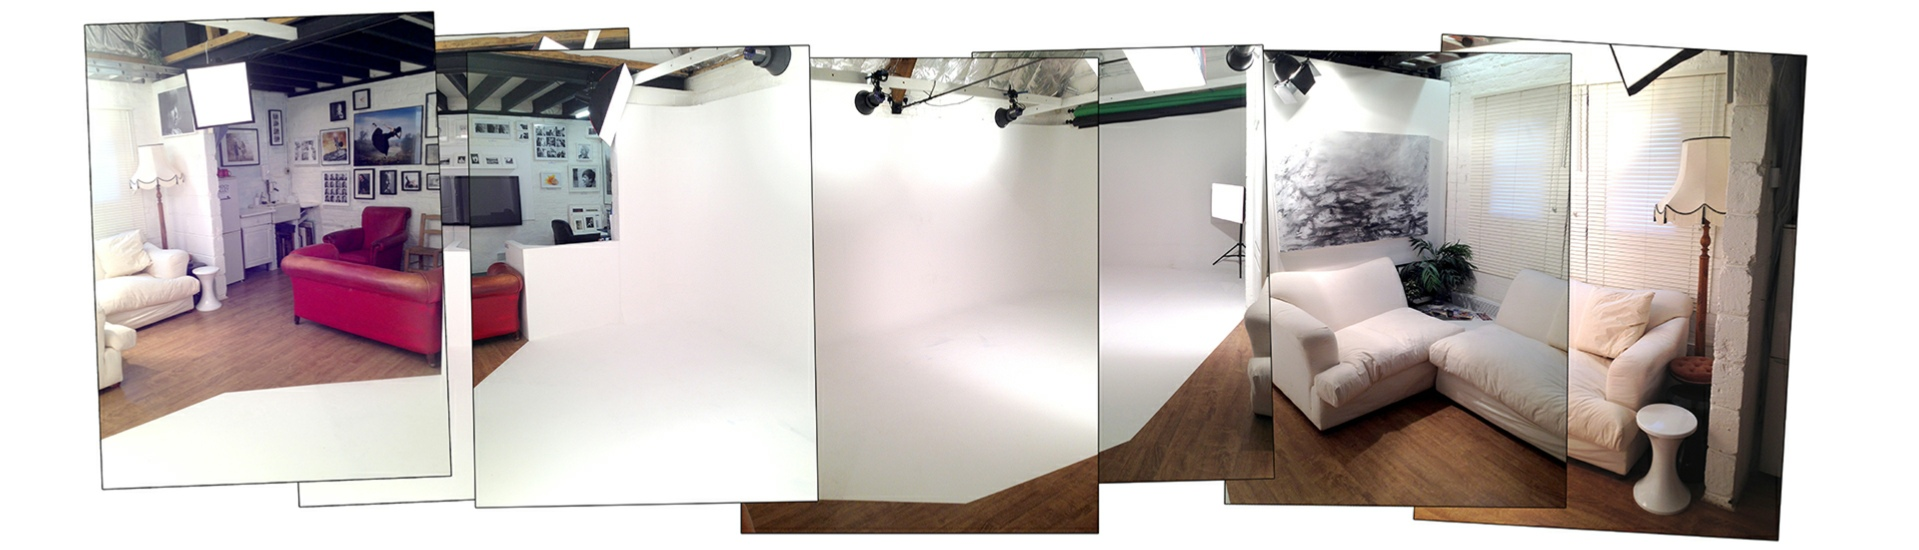 Darenth Valley Photography Studio Internal